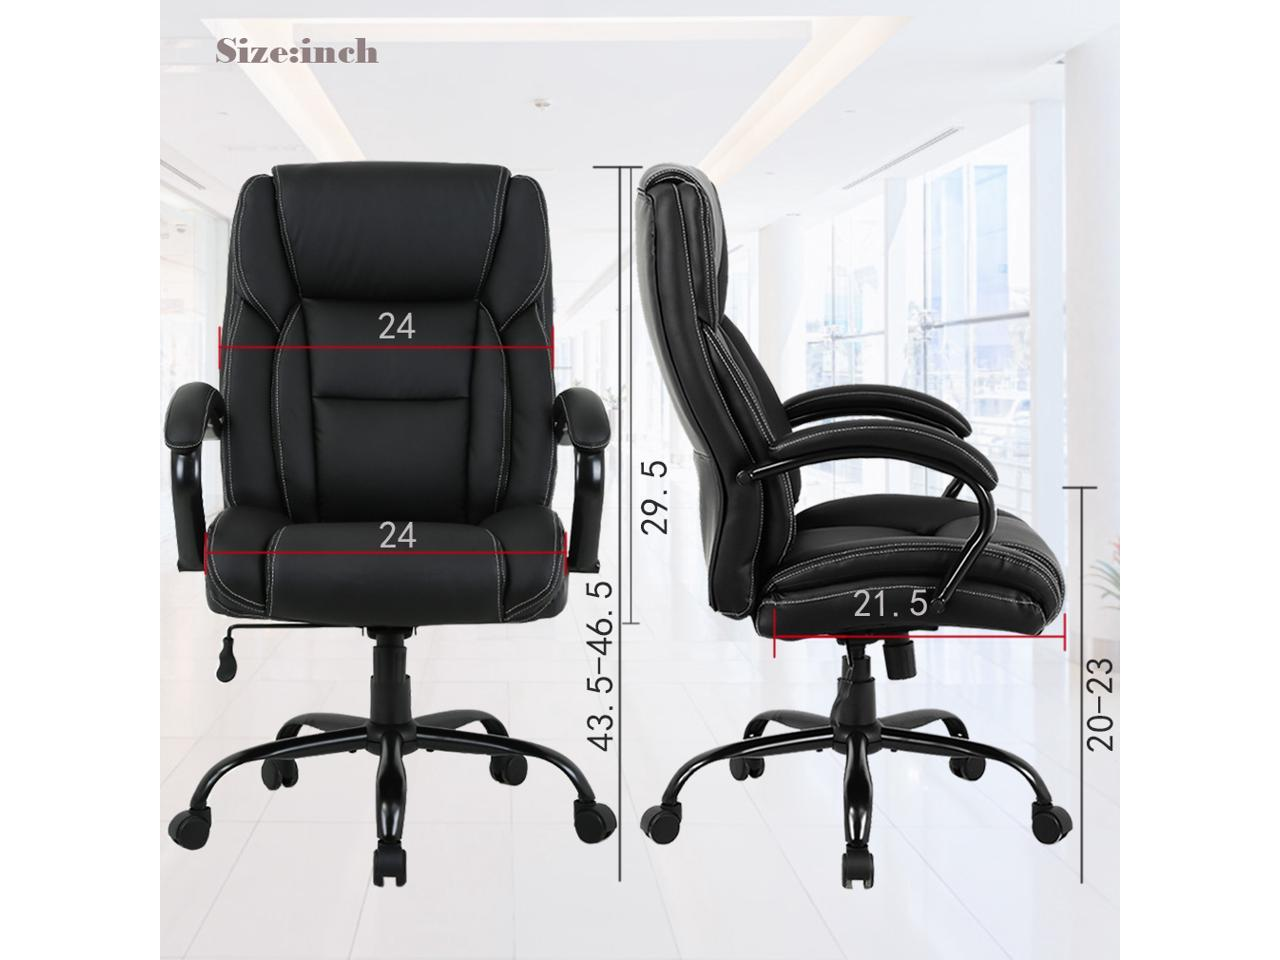 High Back Big And Tall Office Chair 500lb Executive Chair Ergonomic Pu Desk Task Chair Rolling Swivel Chair Adjustable Computer Chair With Lumbar Support Headrest Leather Chair For Women Men Black Newegg Com